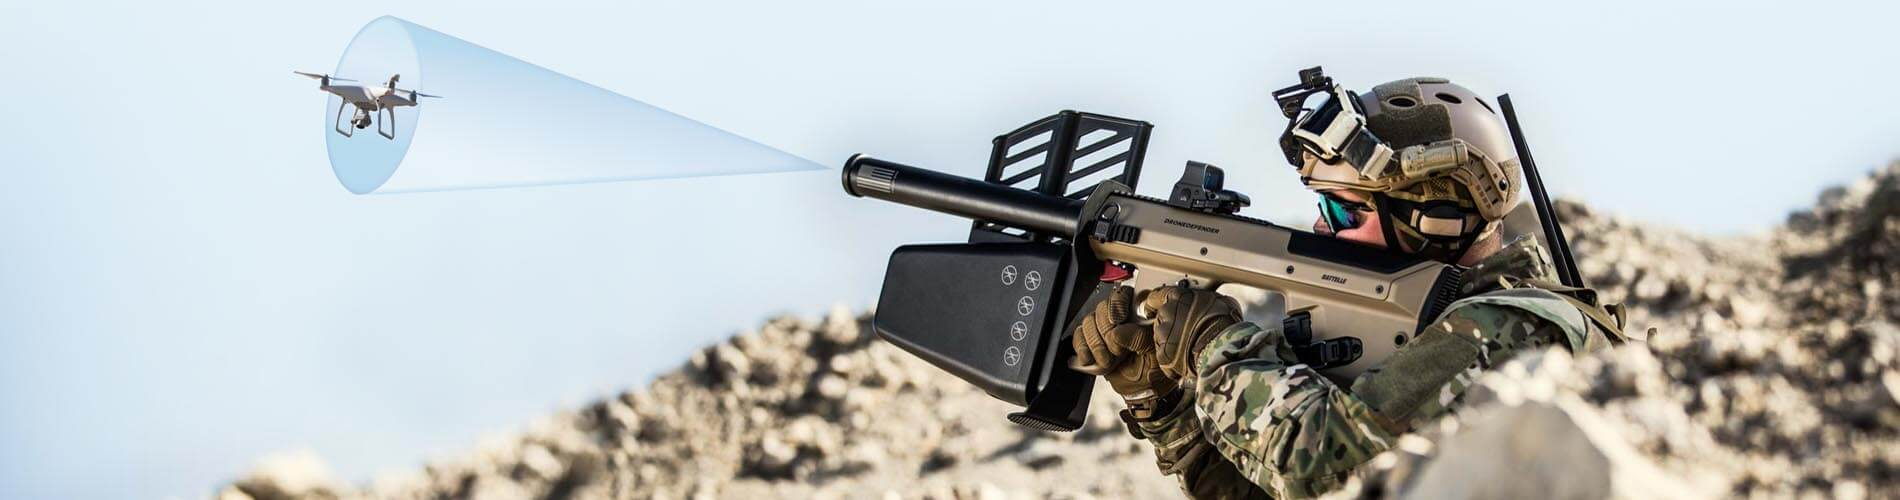 DroneDefender version 2 device in action